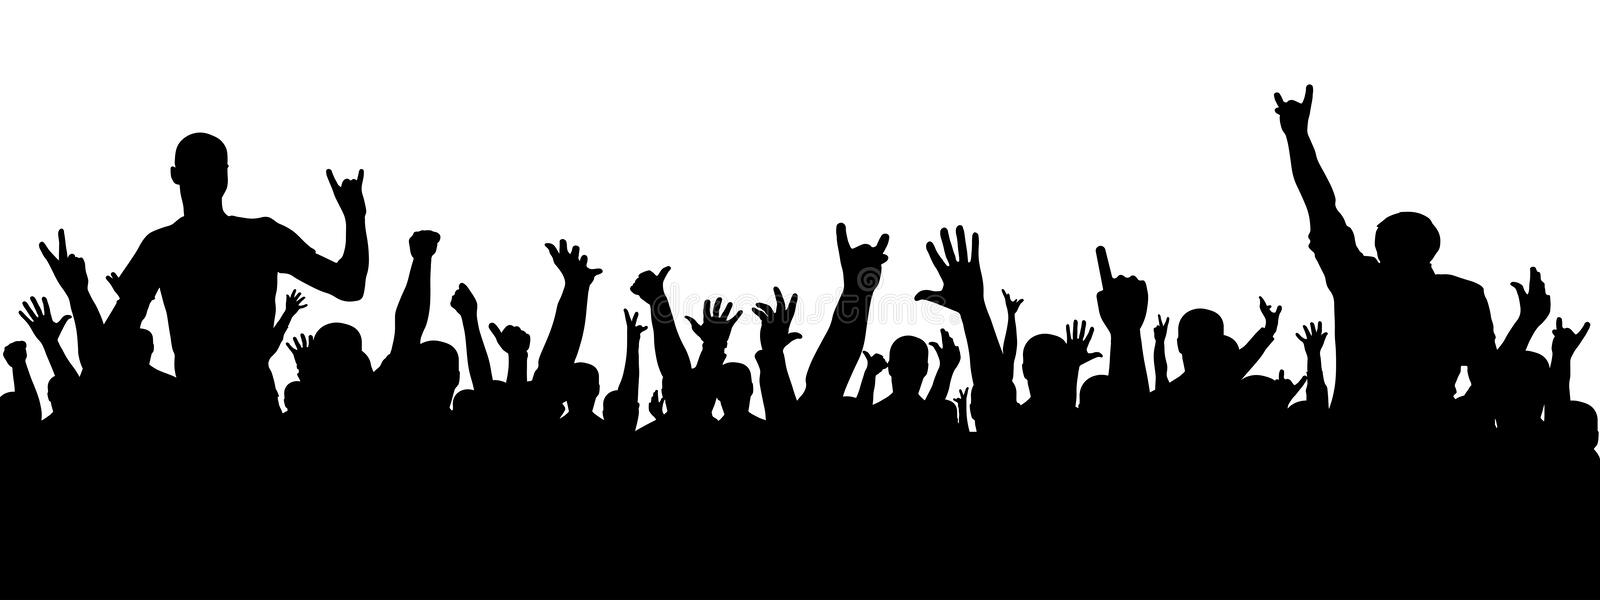 Rock concert silhouette. A crowd of people at a party. Cheerful crowd silhouette. Party people, applaud vector illustration